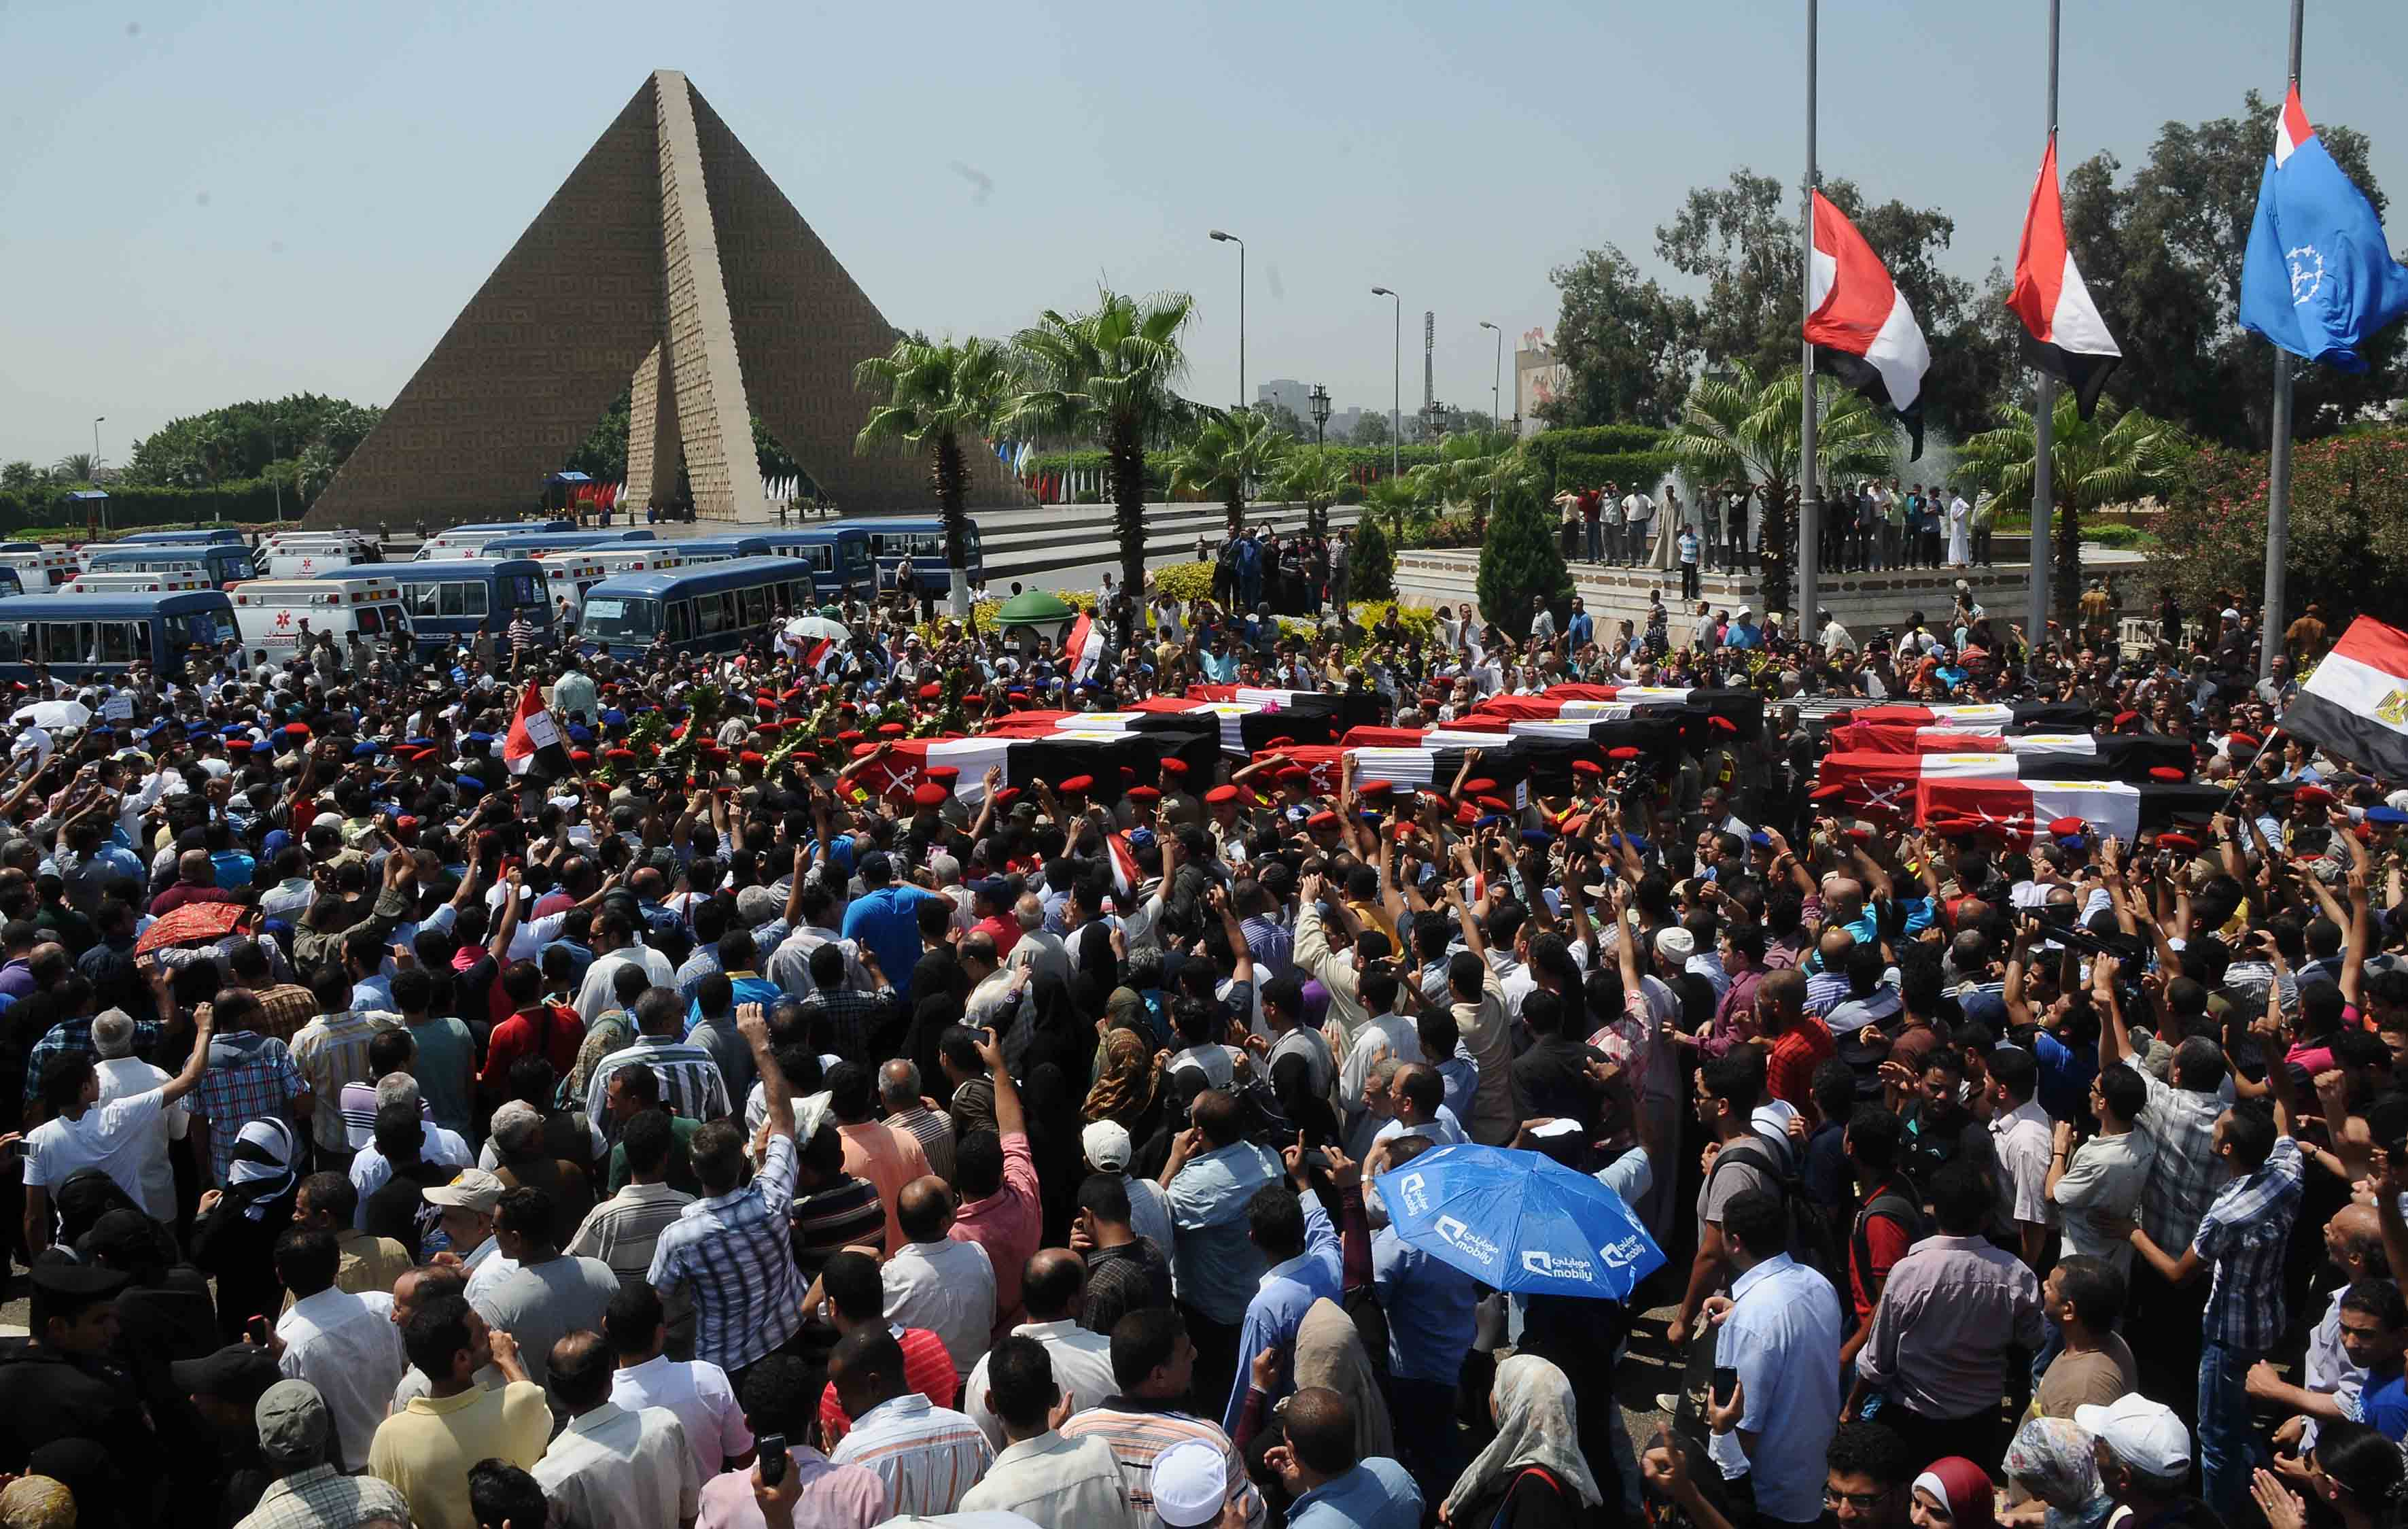 Border guards funeral procession at Naser City turned into a protest - Mohamed Omar